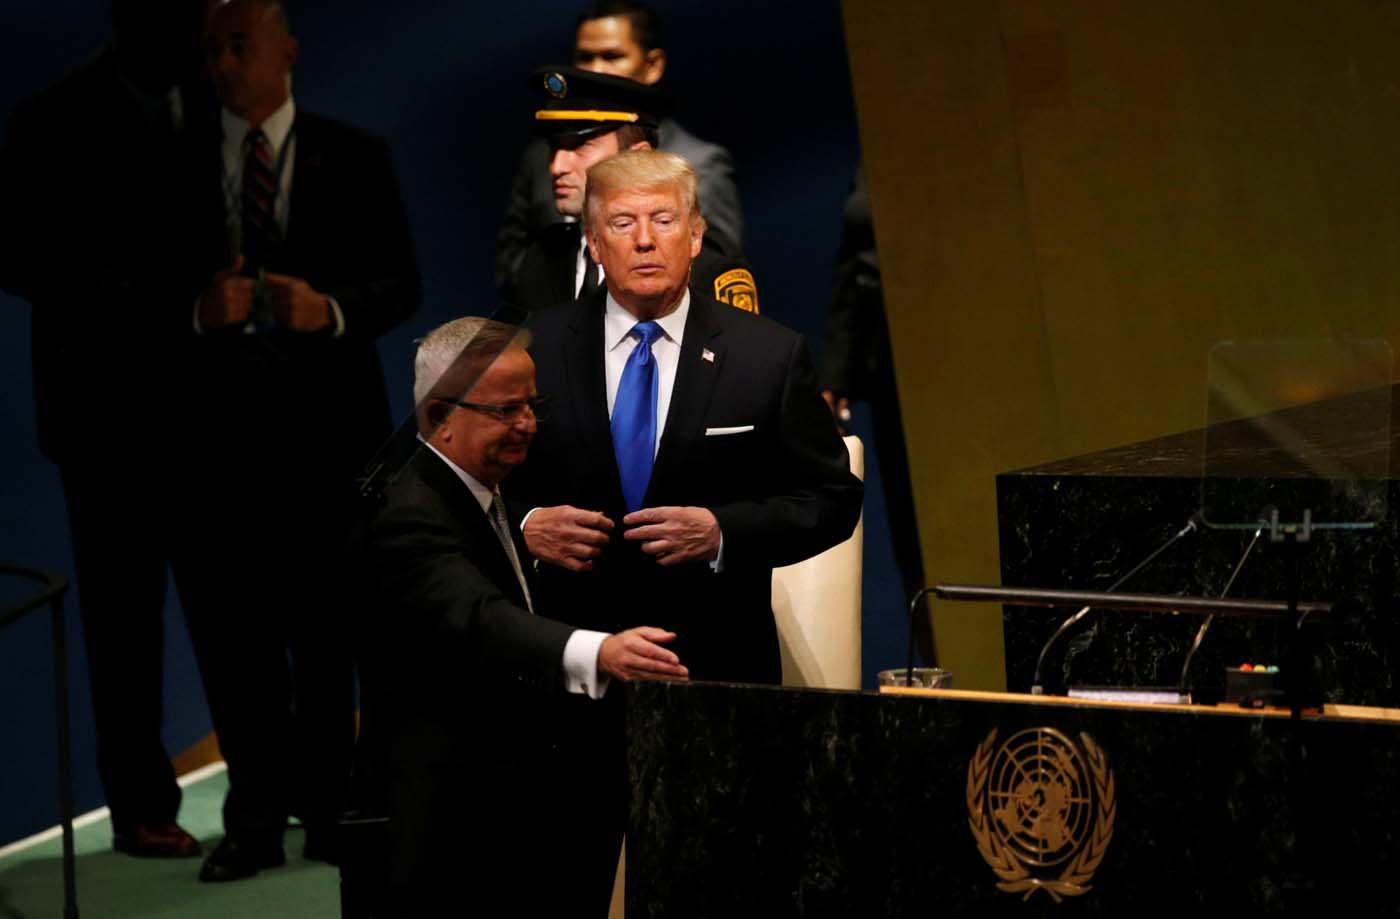 U.S. President Donald Trump steps up to deliver his address to the United Nations General Assembly in New York, U.S., September 19, 2017. REUTERS/Kevin Lamarque